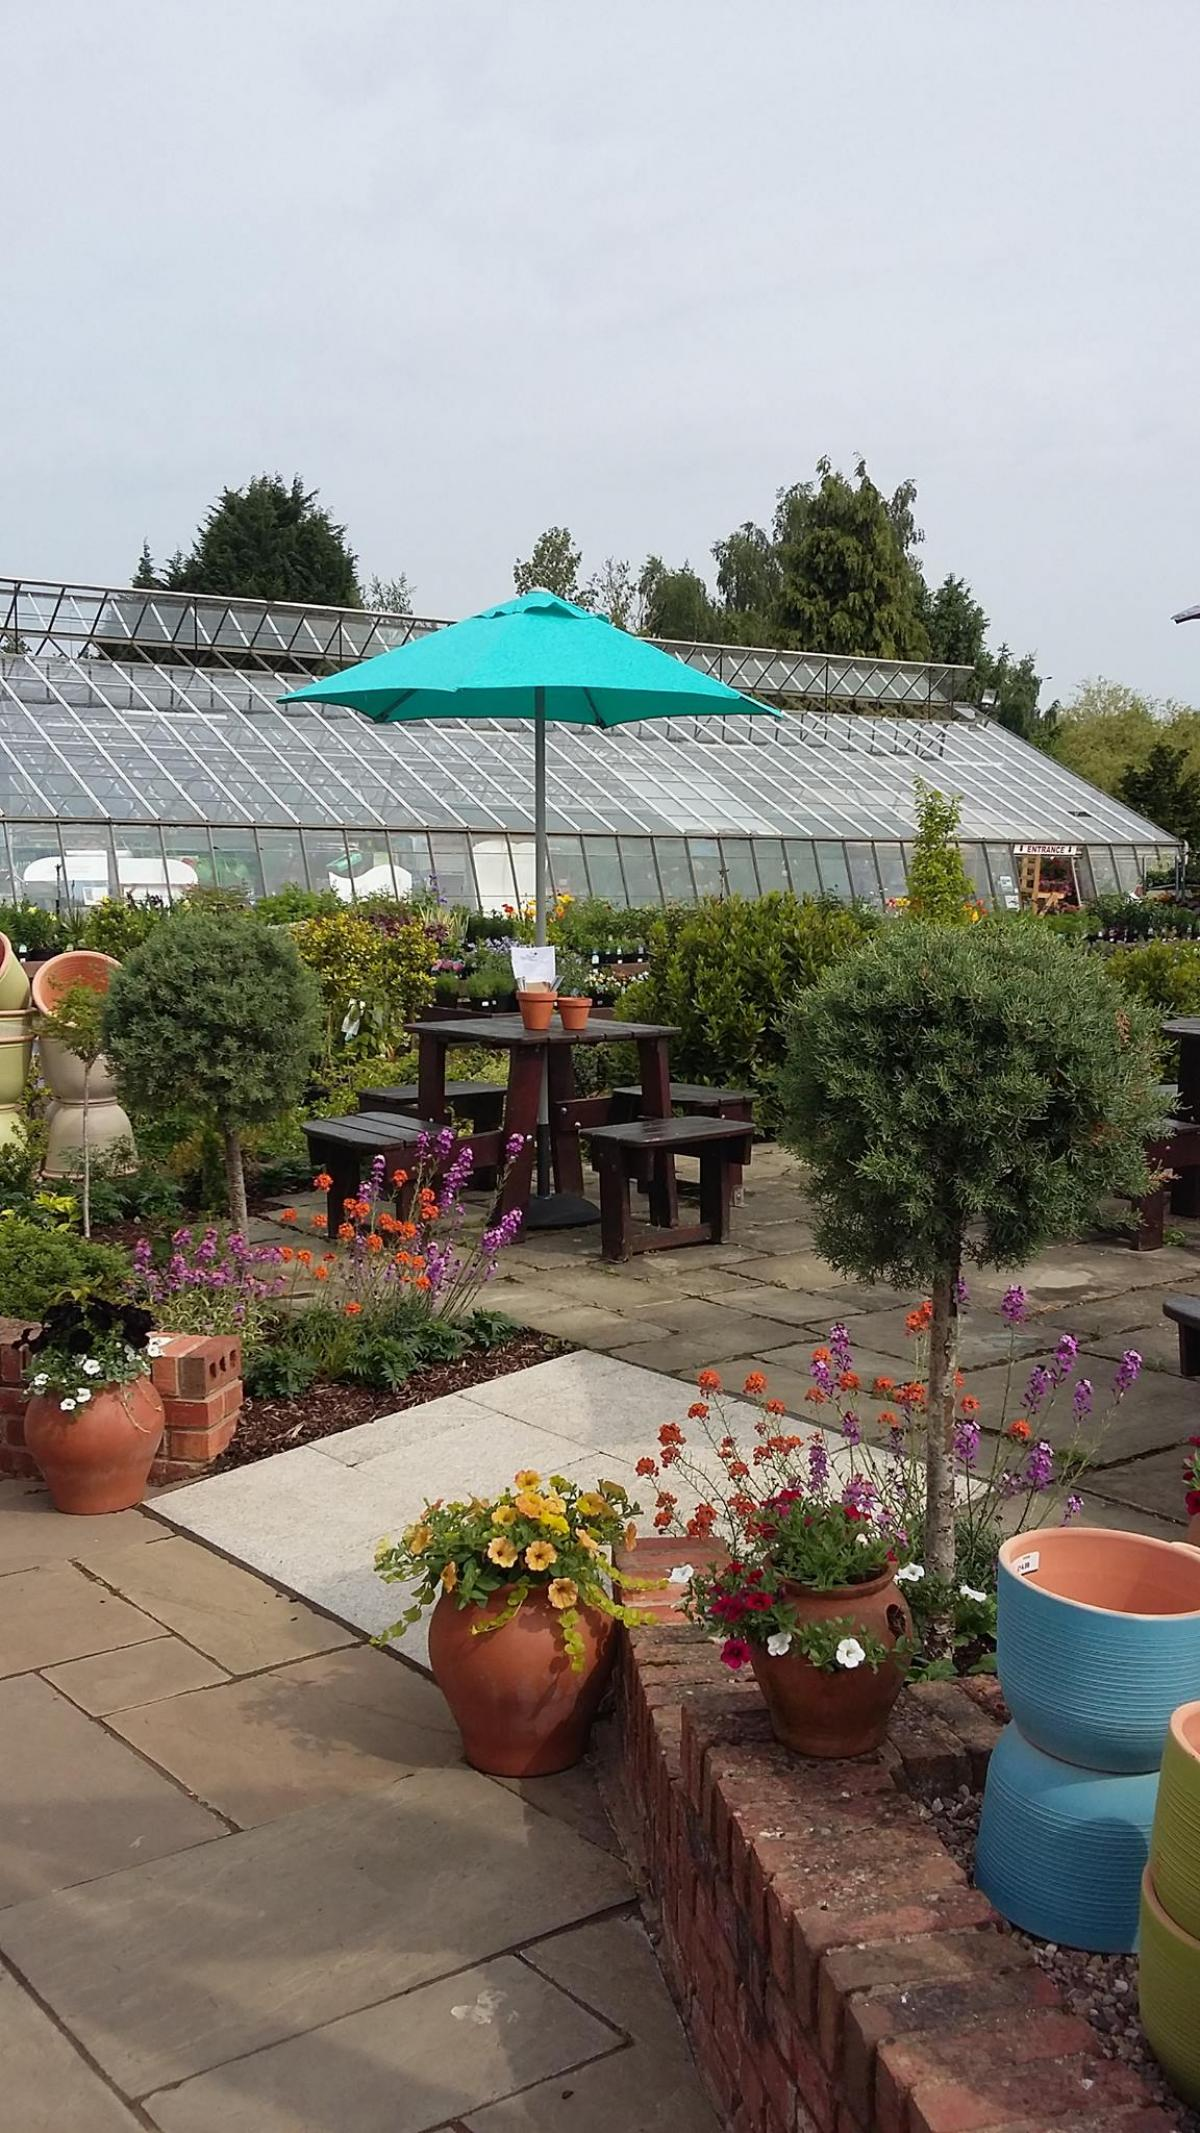 Images from Mrs Bee's Potting Shed Café